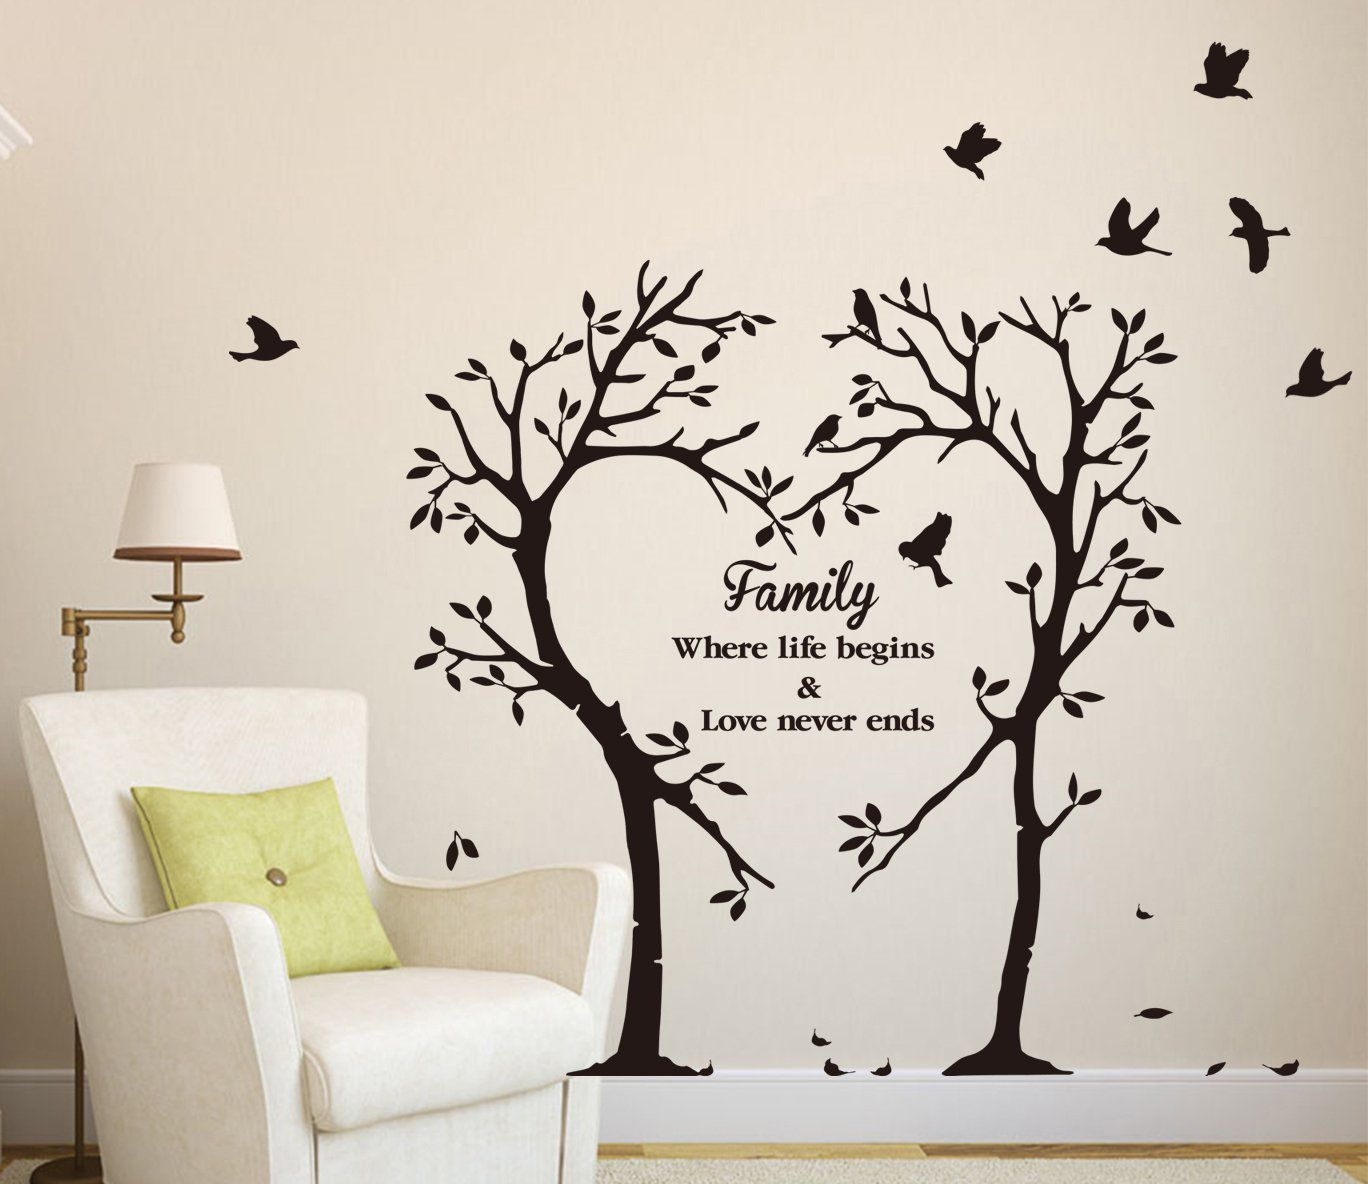 Family tree wall art roselawnlutheran large family tree wall decal with birds for picture framesoto frame tree wall art removable vinyl decal wall sticker large size d561 amipublicfo Choice Image